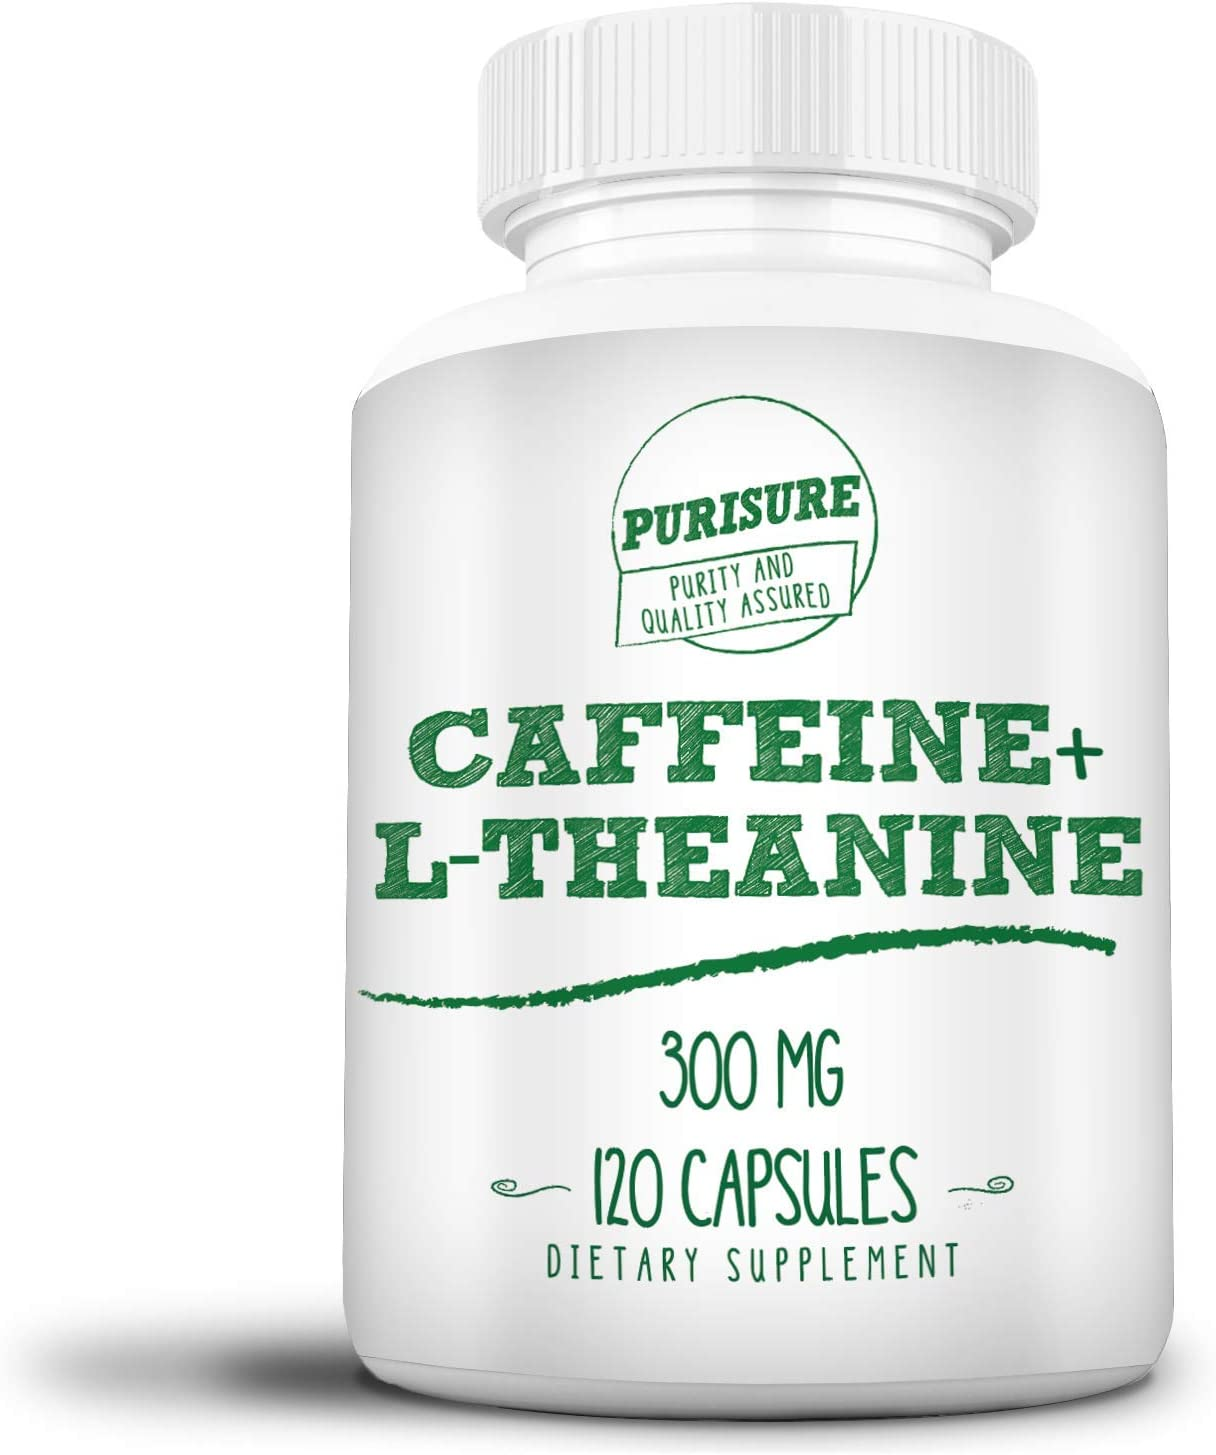 Caffeine + L-Theanine 300 mg (120 Capsules), No Crash or Jitters, Alert and Productive, Calm and Relaxed, Nootropic Supplement (120 Capsules): Health & Personal Care